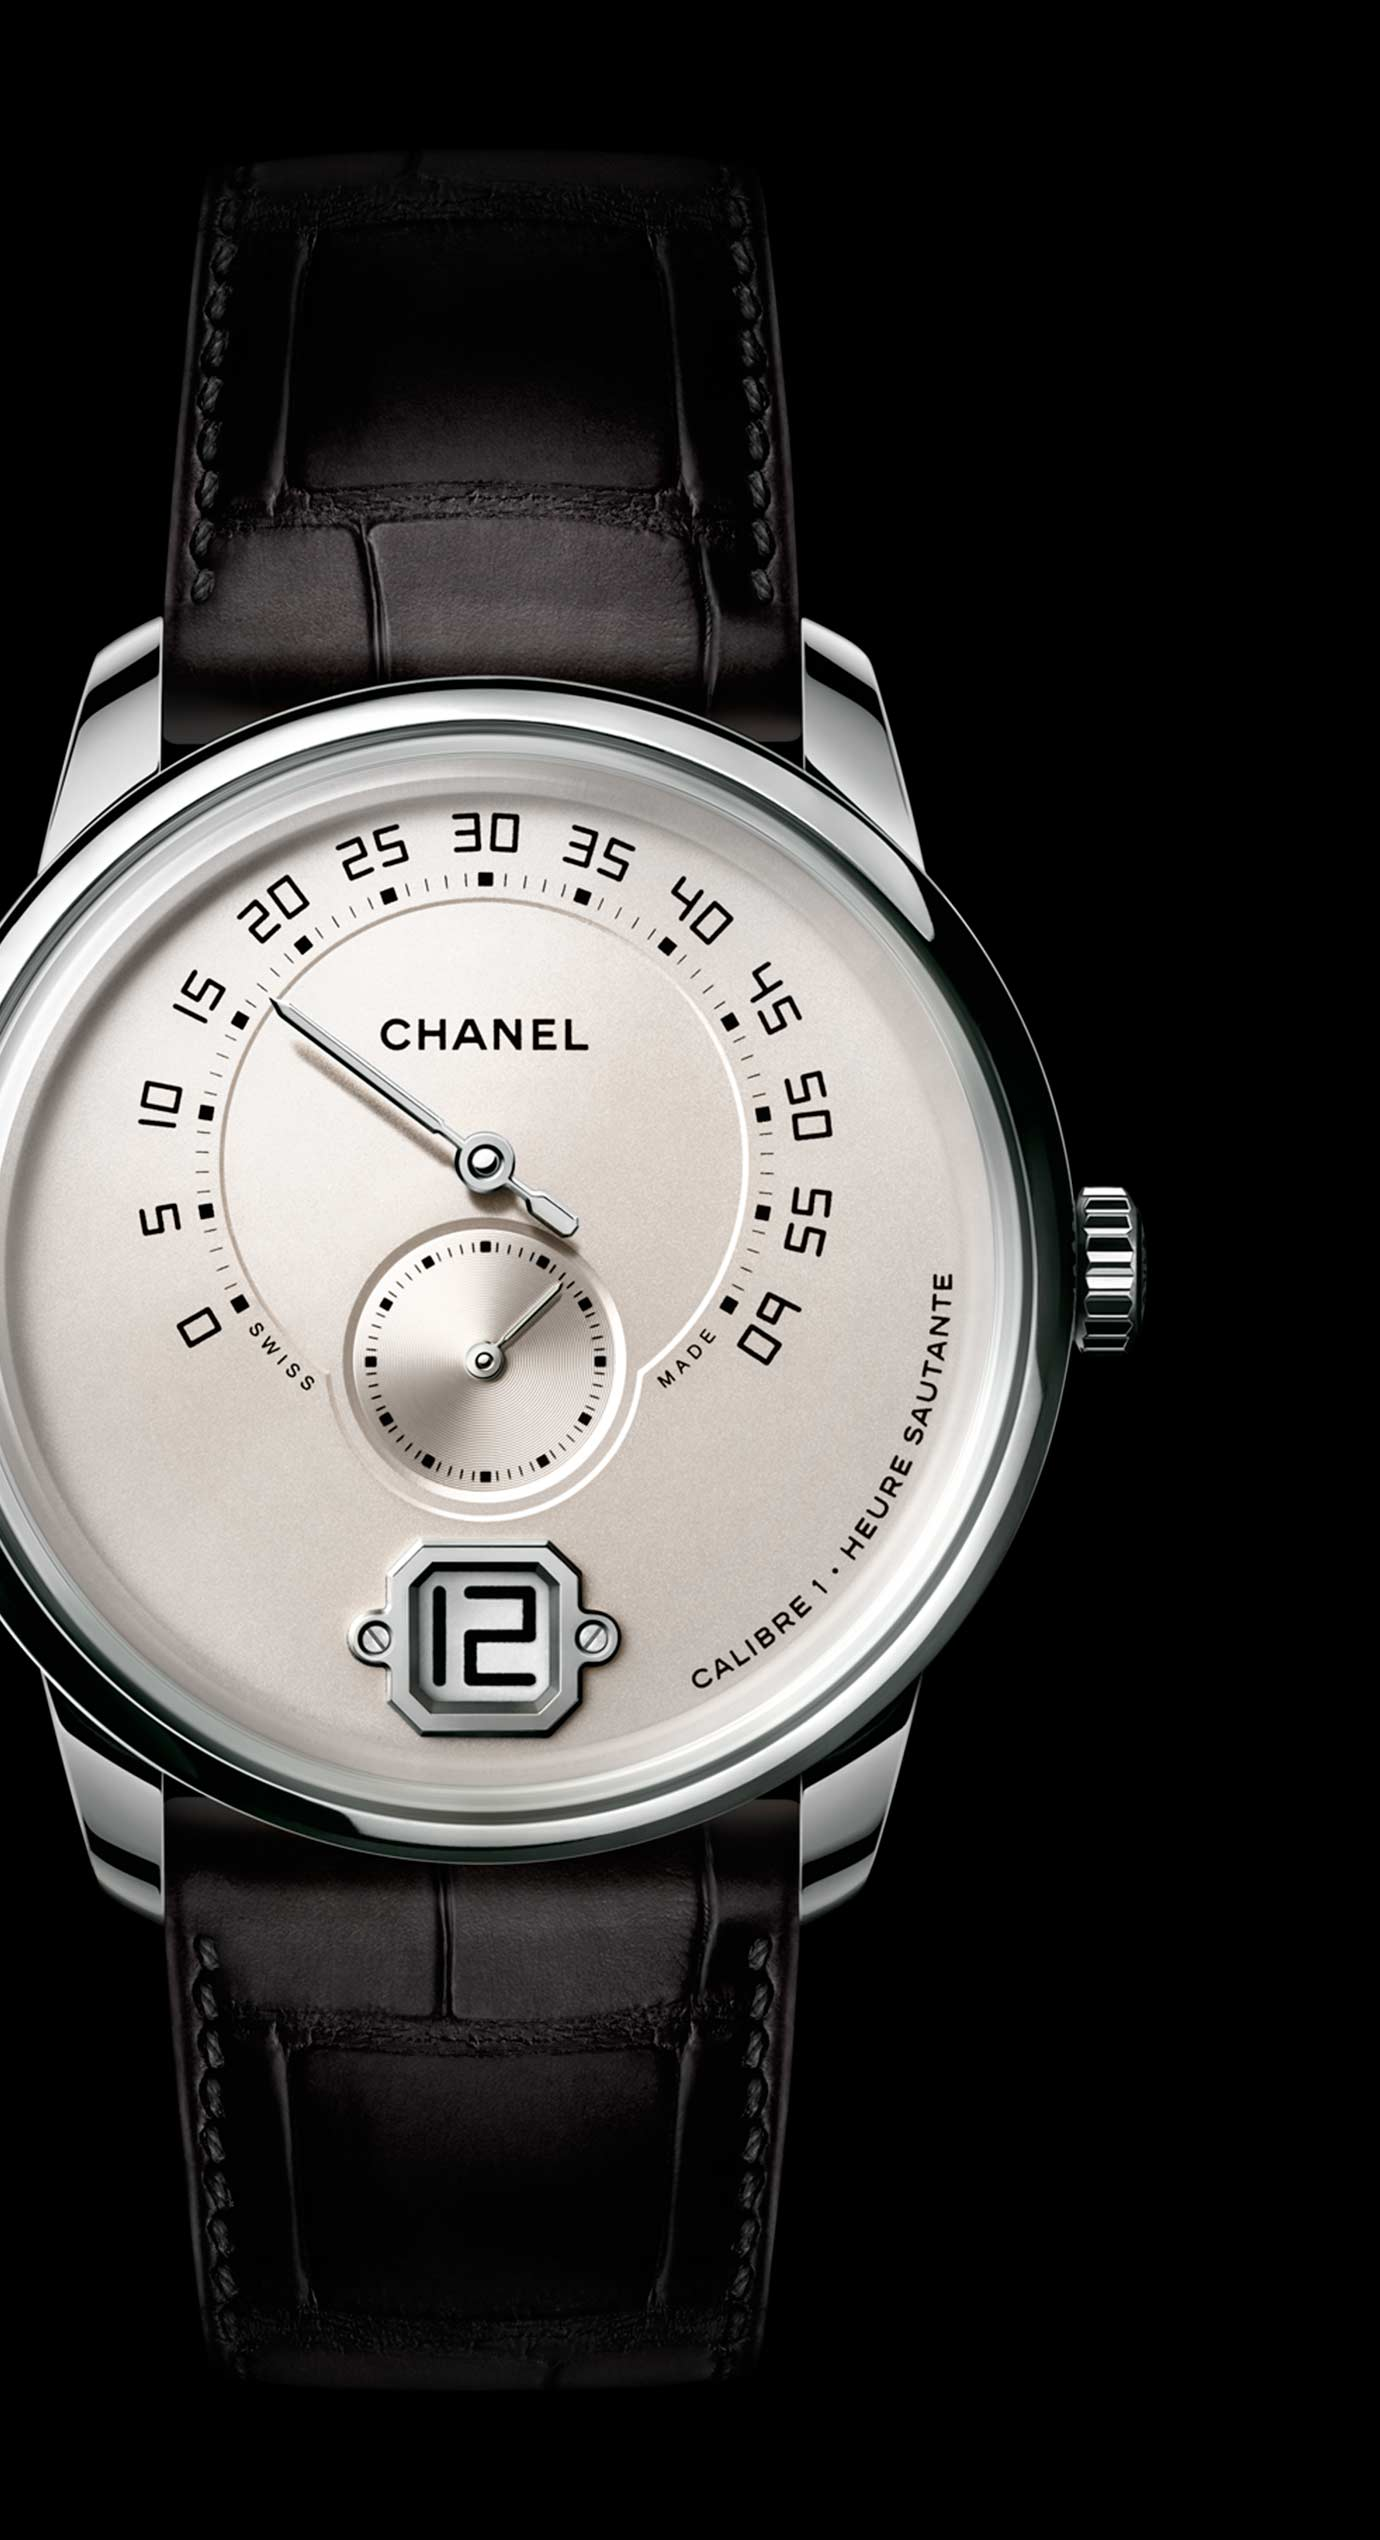 Monsieur watch in 18K white gold, ivory dial with jumping hour, 240° retrograde minutes and small second counter. - Enlarged view